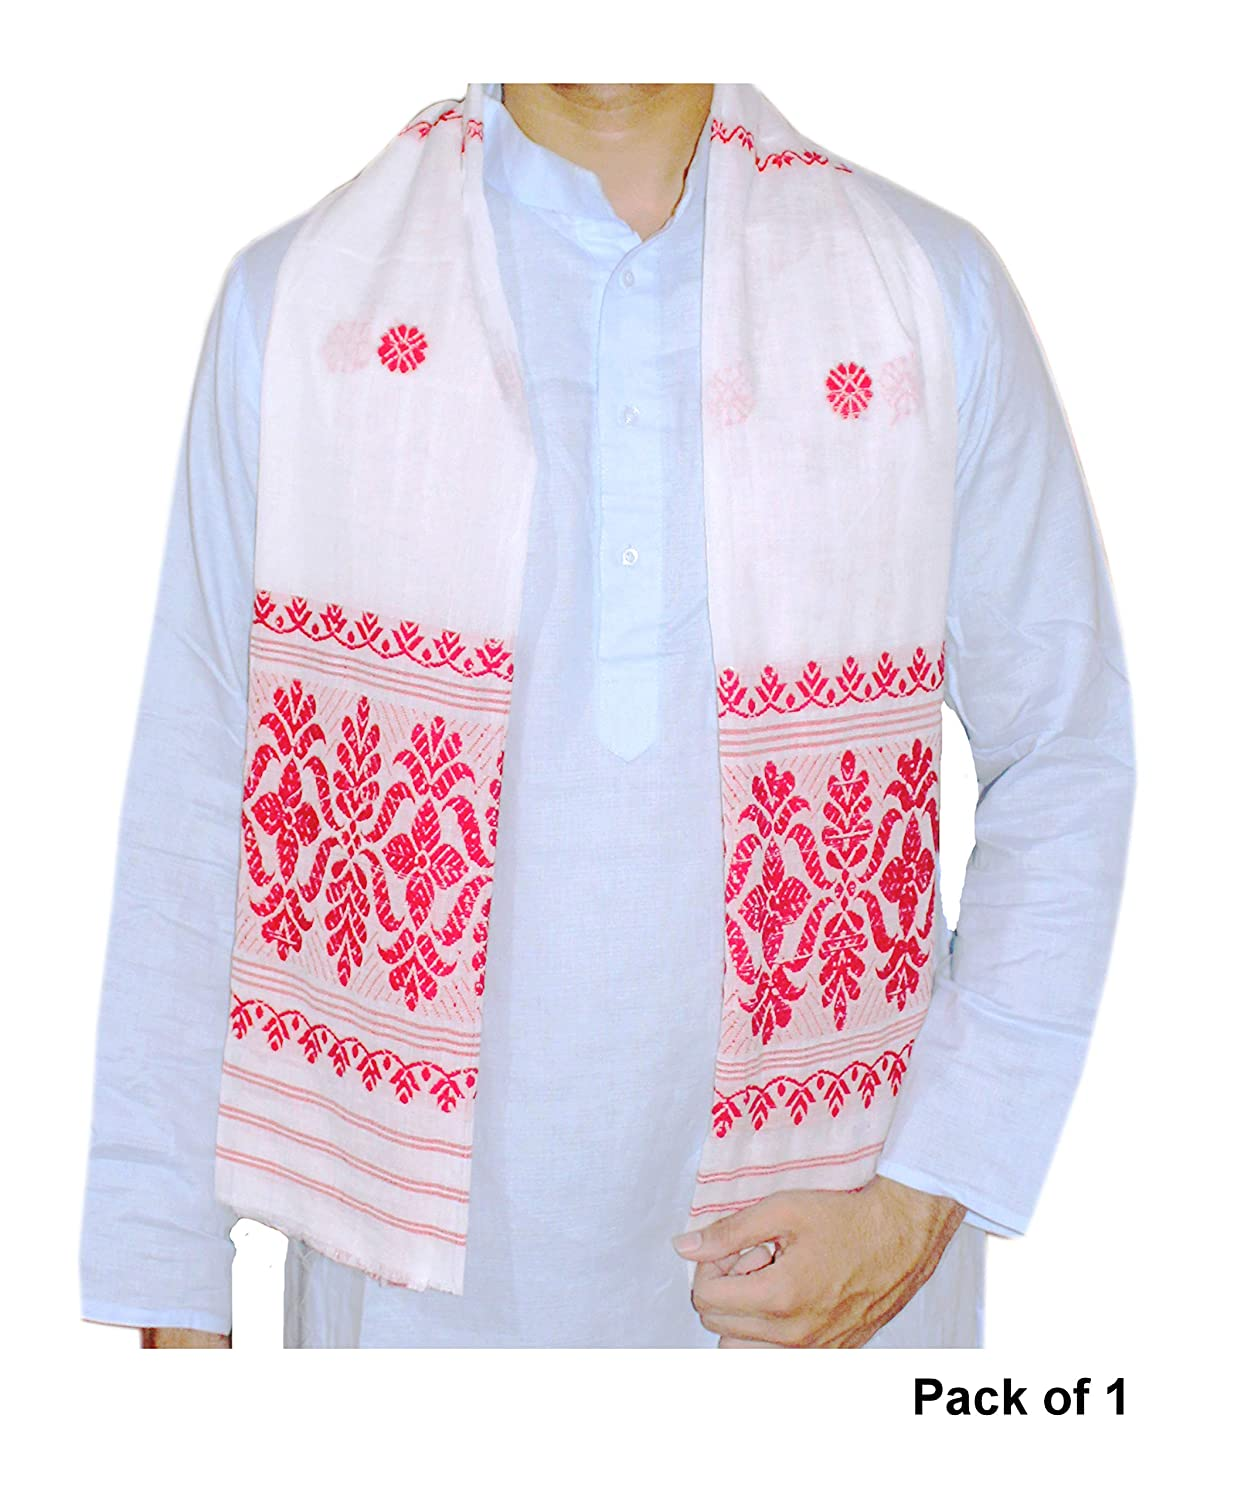 "Epic Store, Assamese 100% Premium Cottony Soft gamosa, Full Embroidery Work,55"" * 25"" Red and White 1 Piece gamosa"